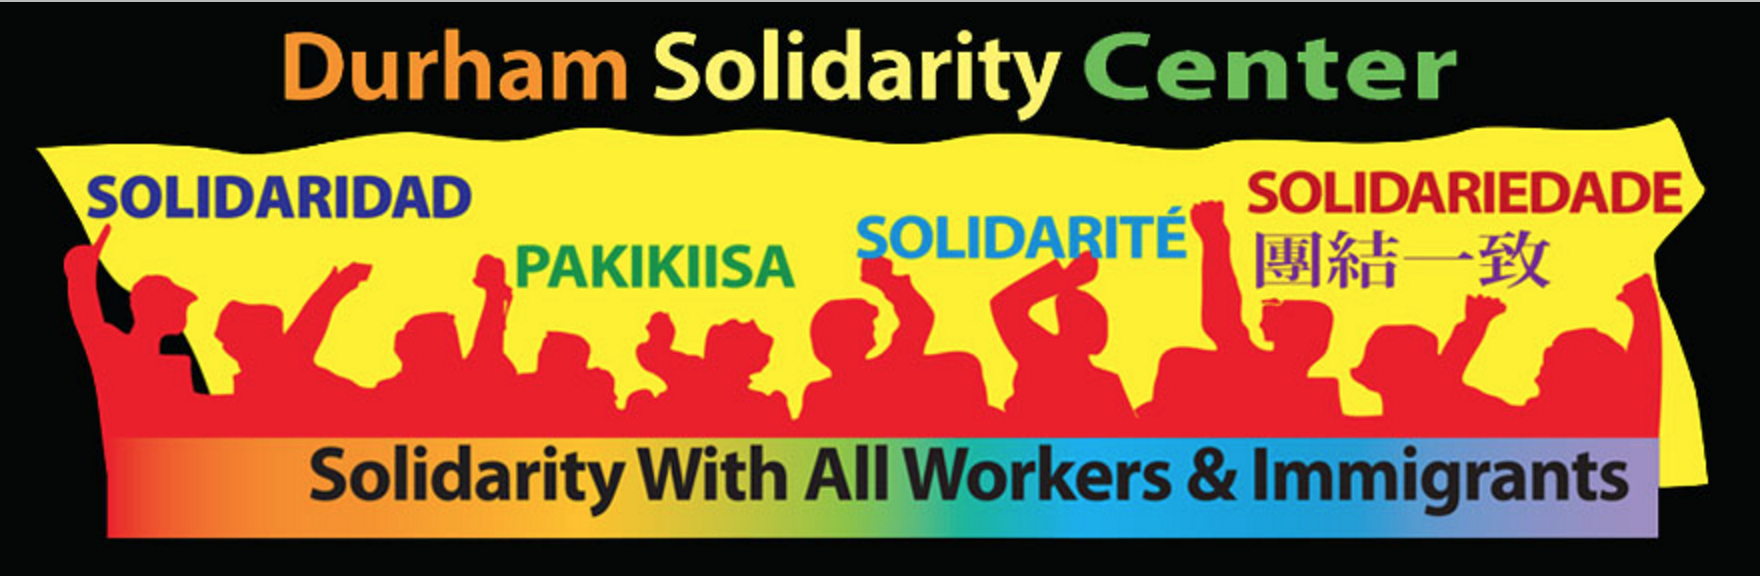 Donate to the Durham Solidarity Center Freedom Fighter Bond Fund